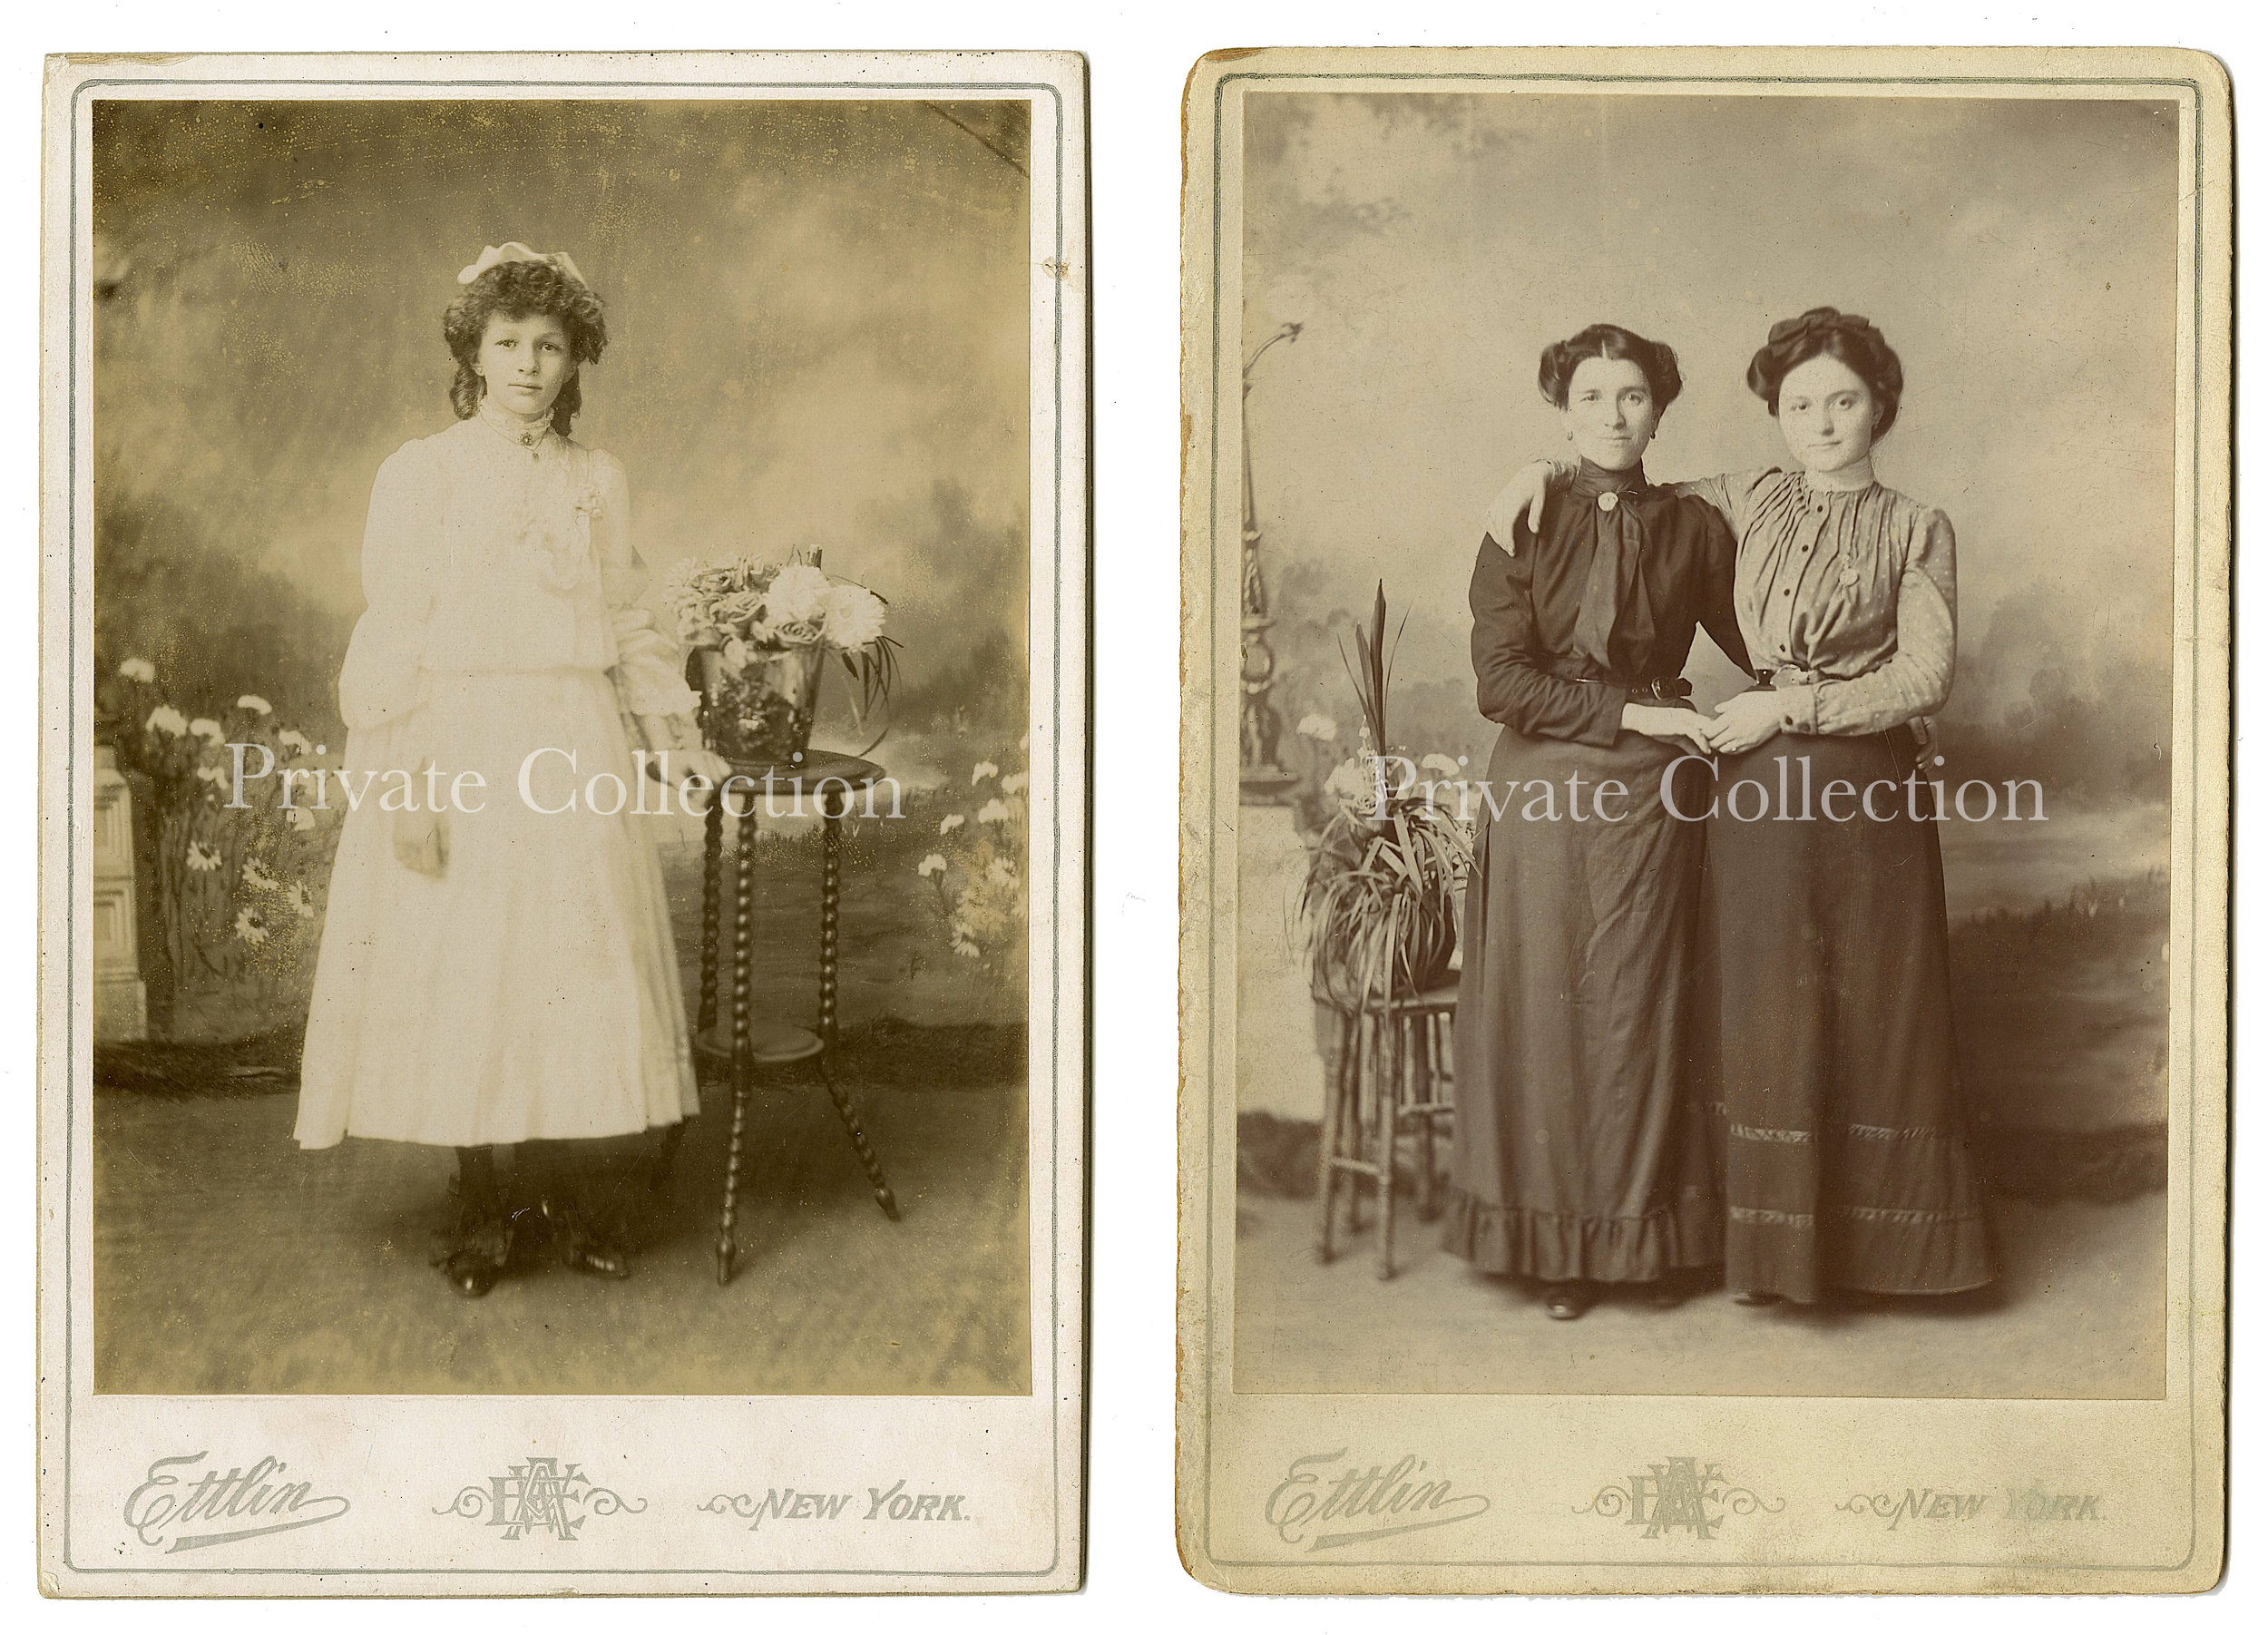 Cabinet Card Photographs, by William Ettlin, 17 Chatham Square, New York, ca. 1905.  Private Collection